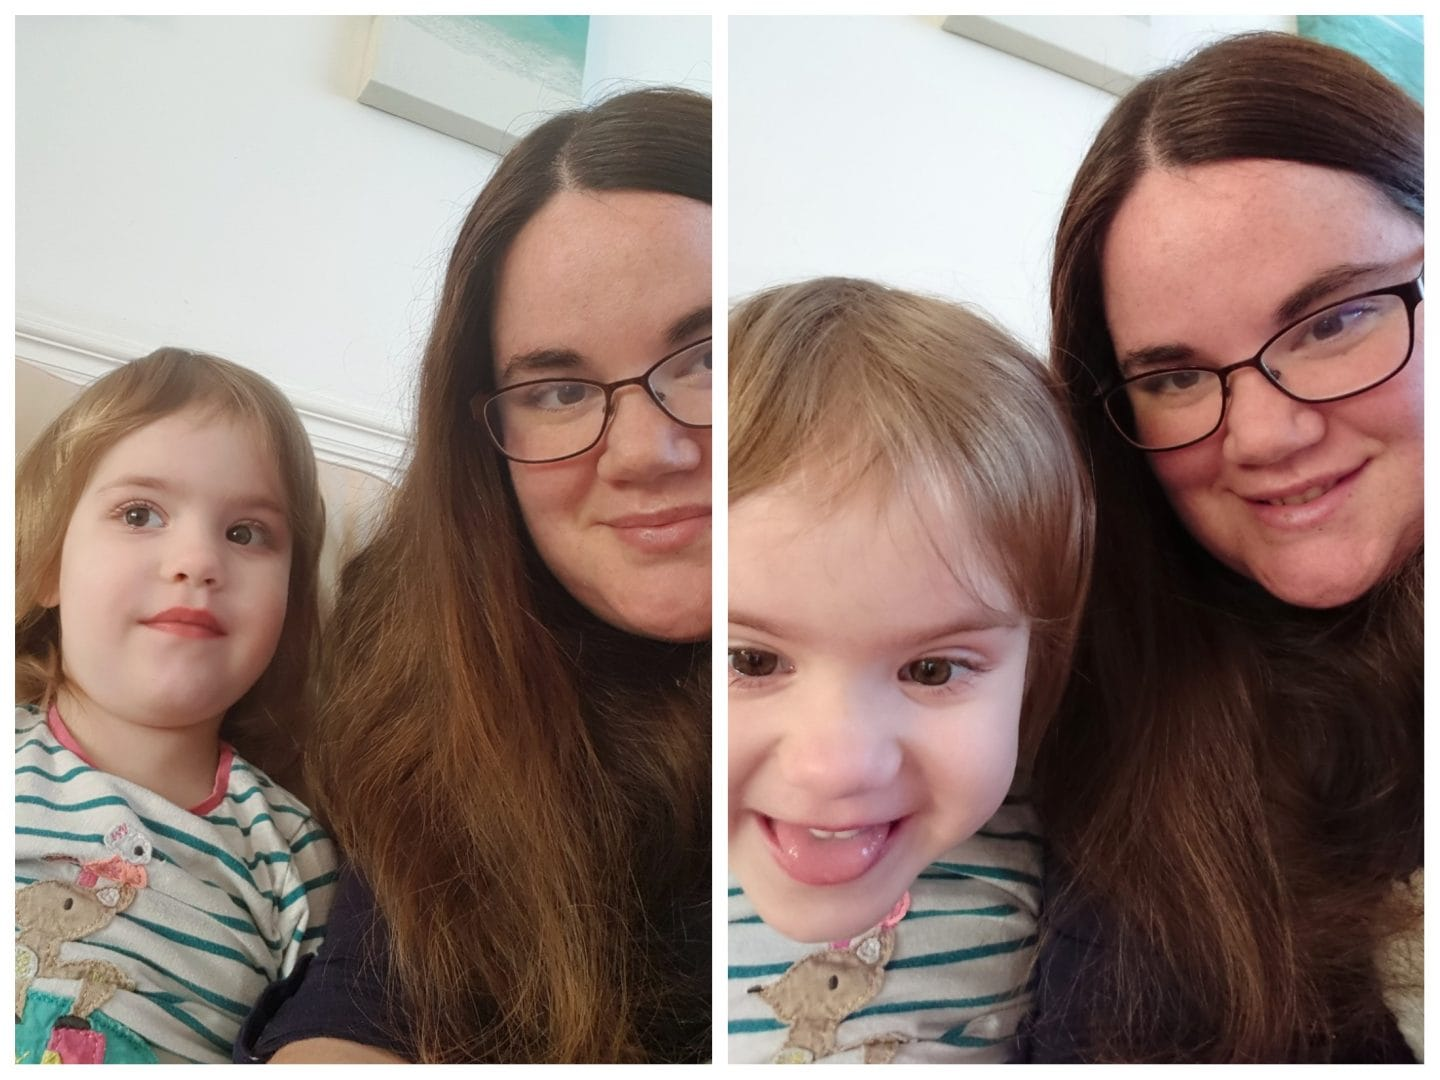 Me and littlest with comparison shots from two smart phones